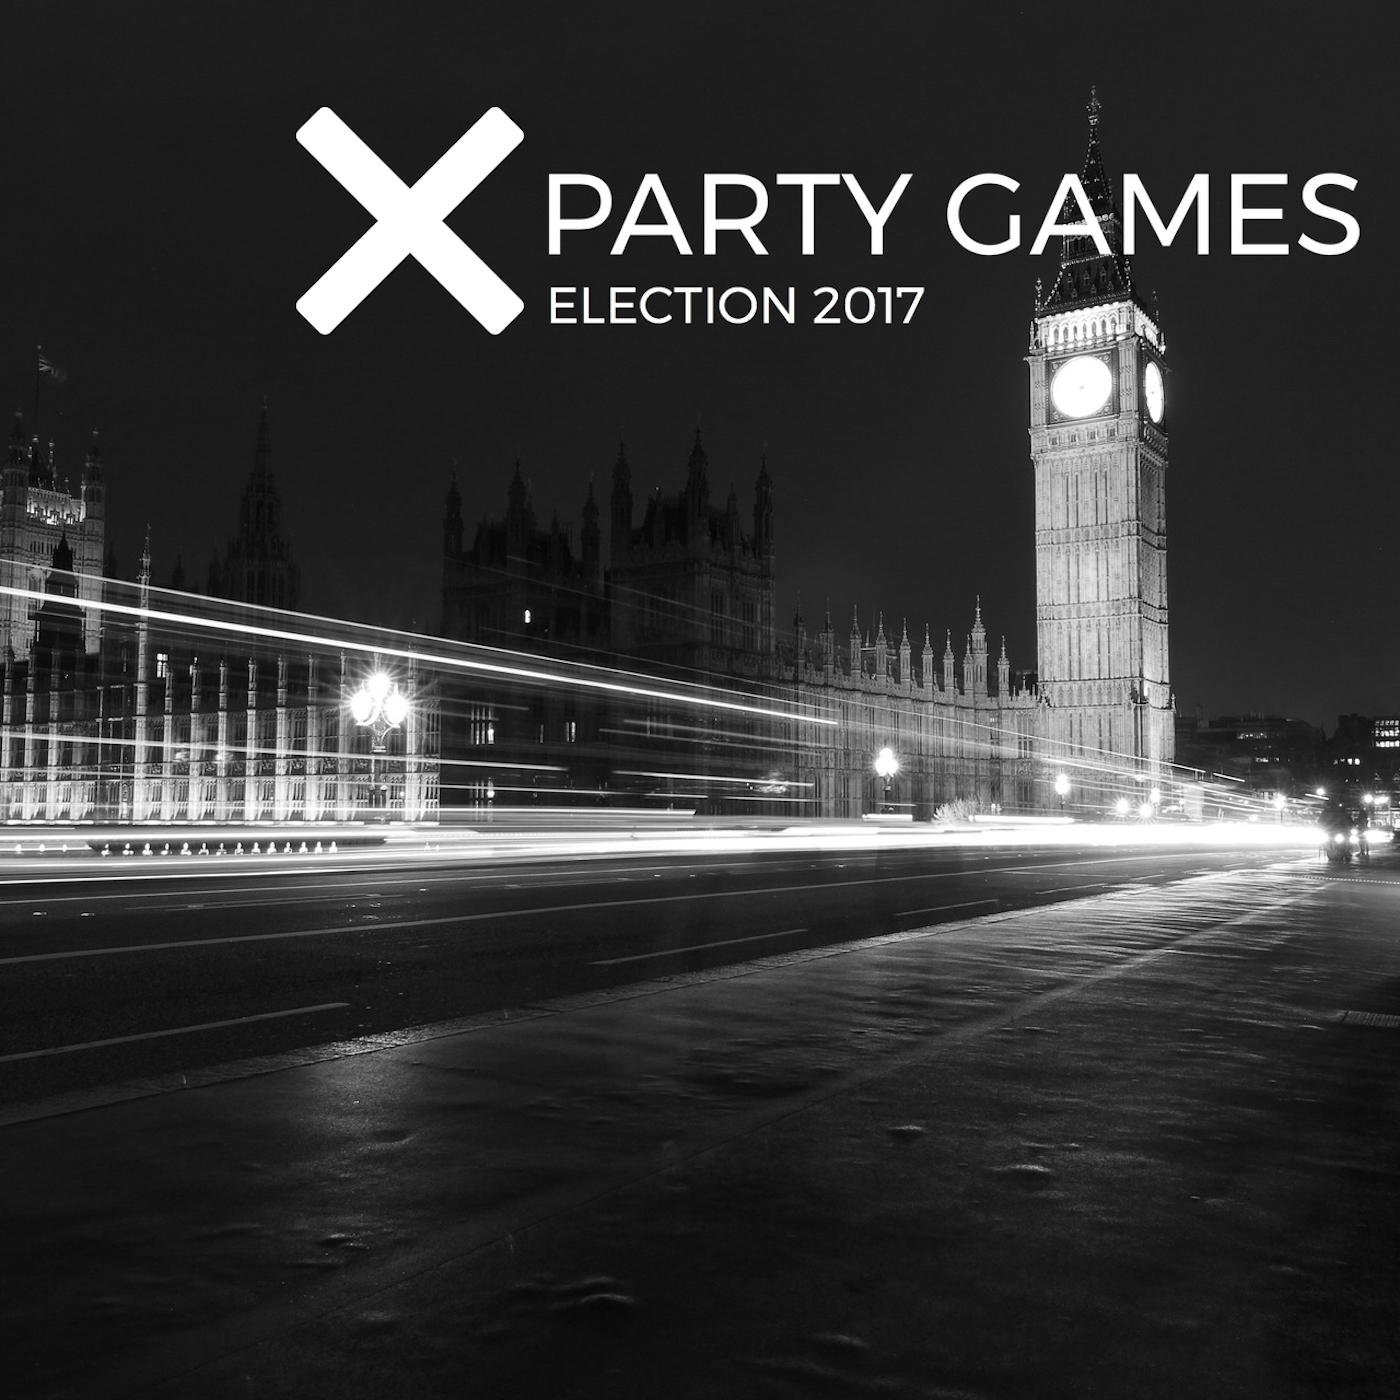 Podcast - New episode every week during the election campaign...